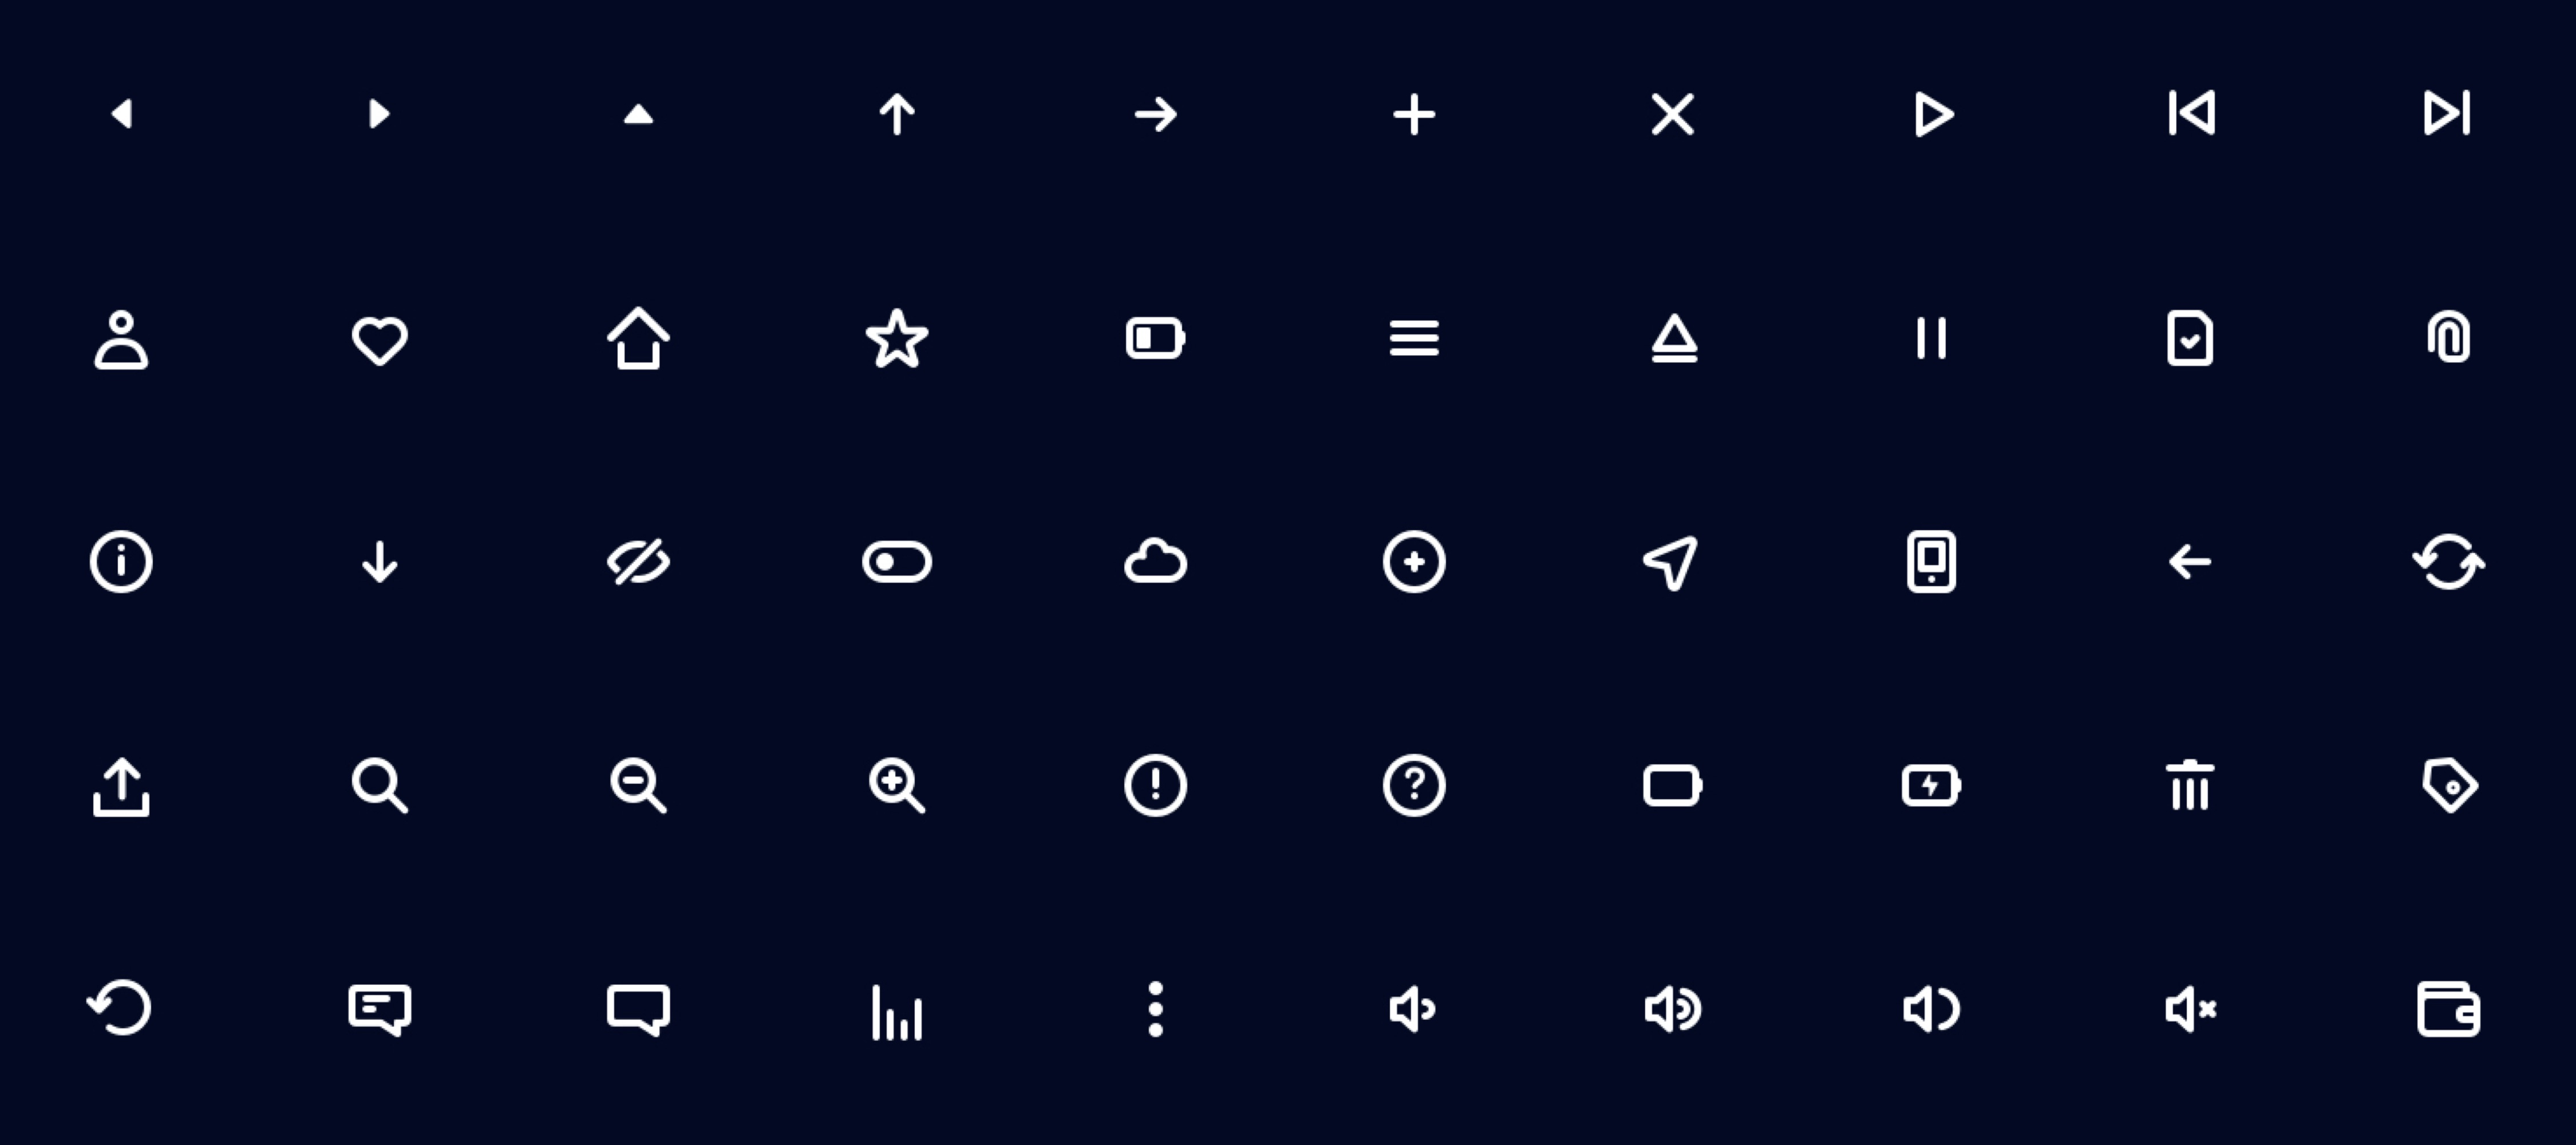 A Beginner's Guide to Iconography